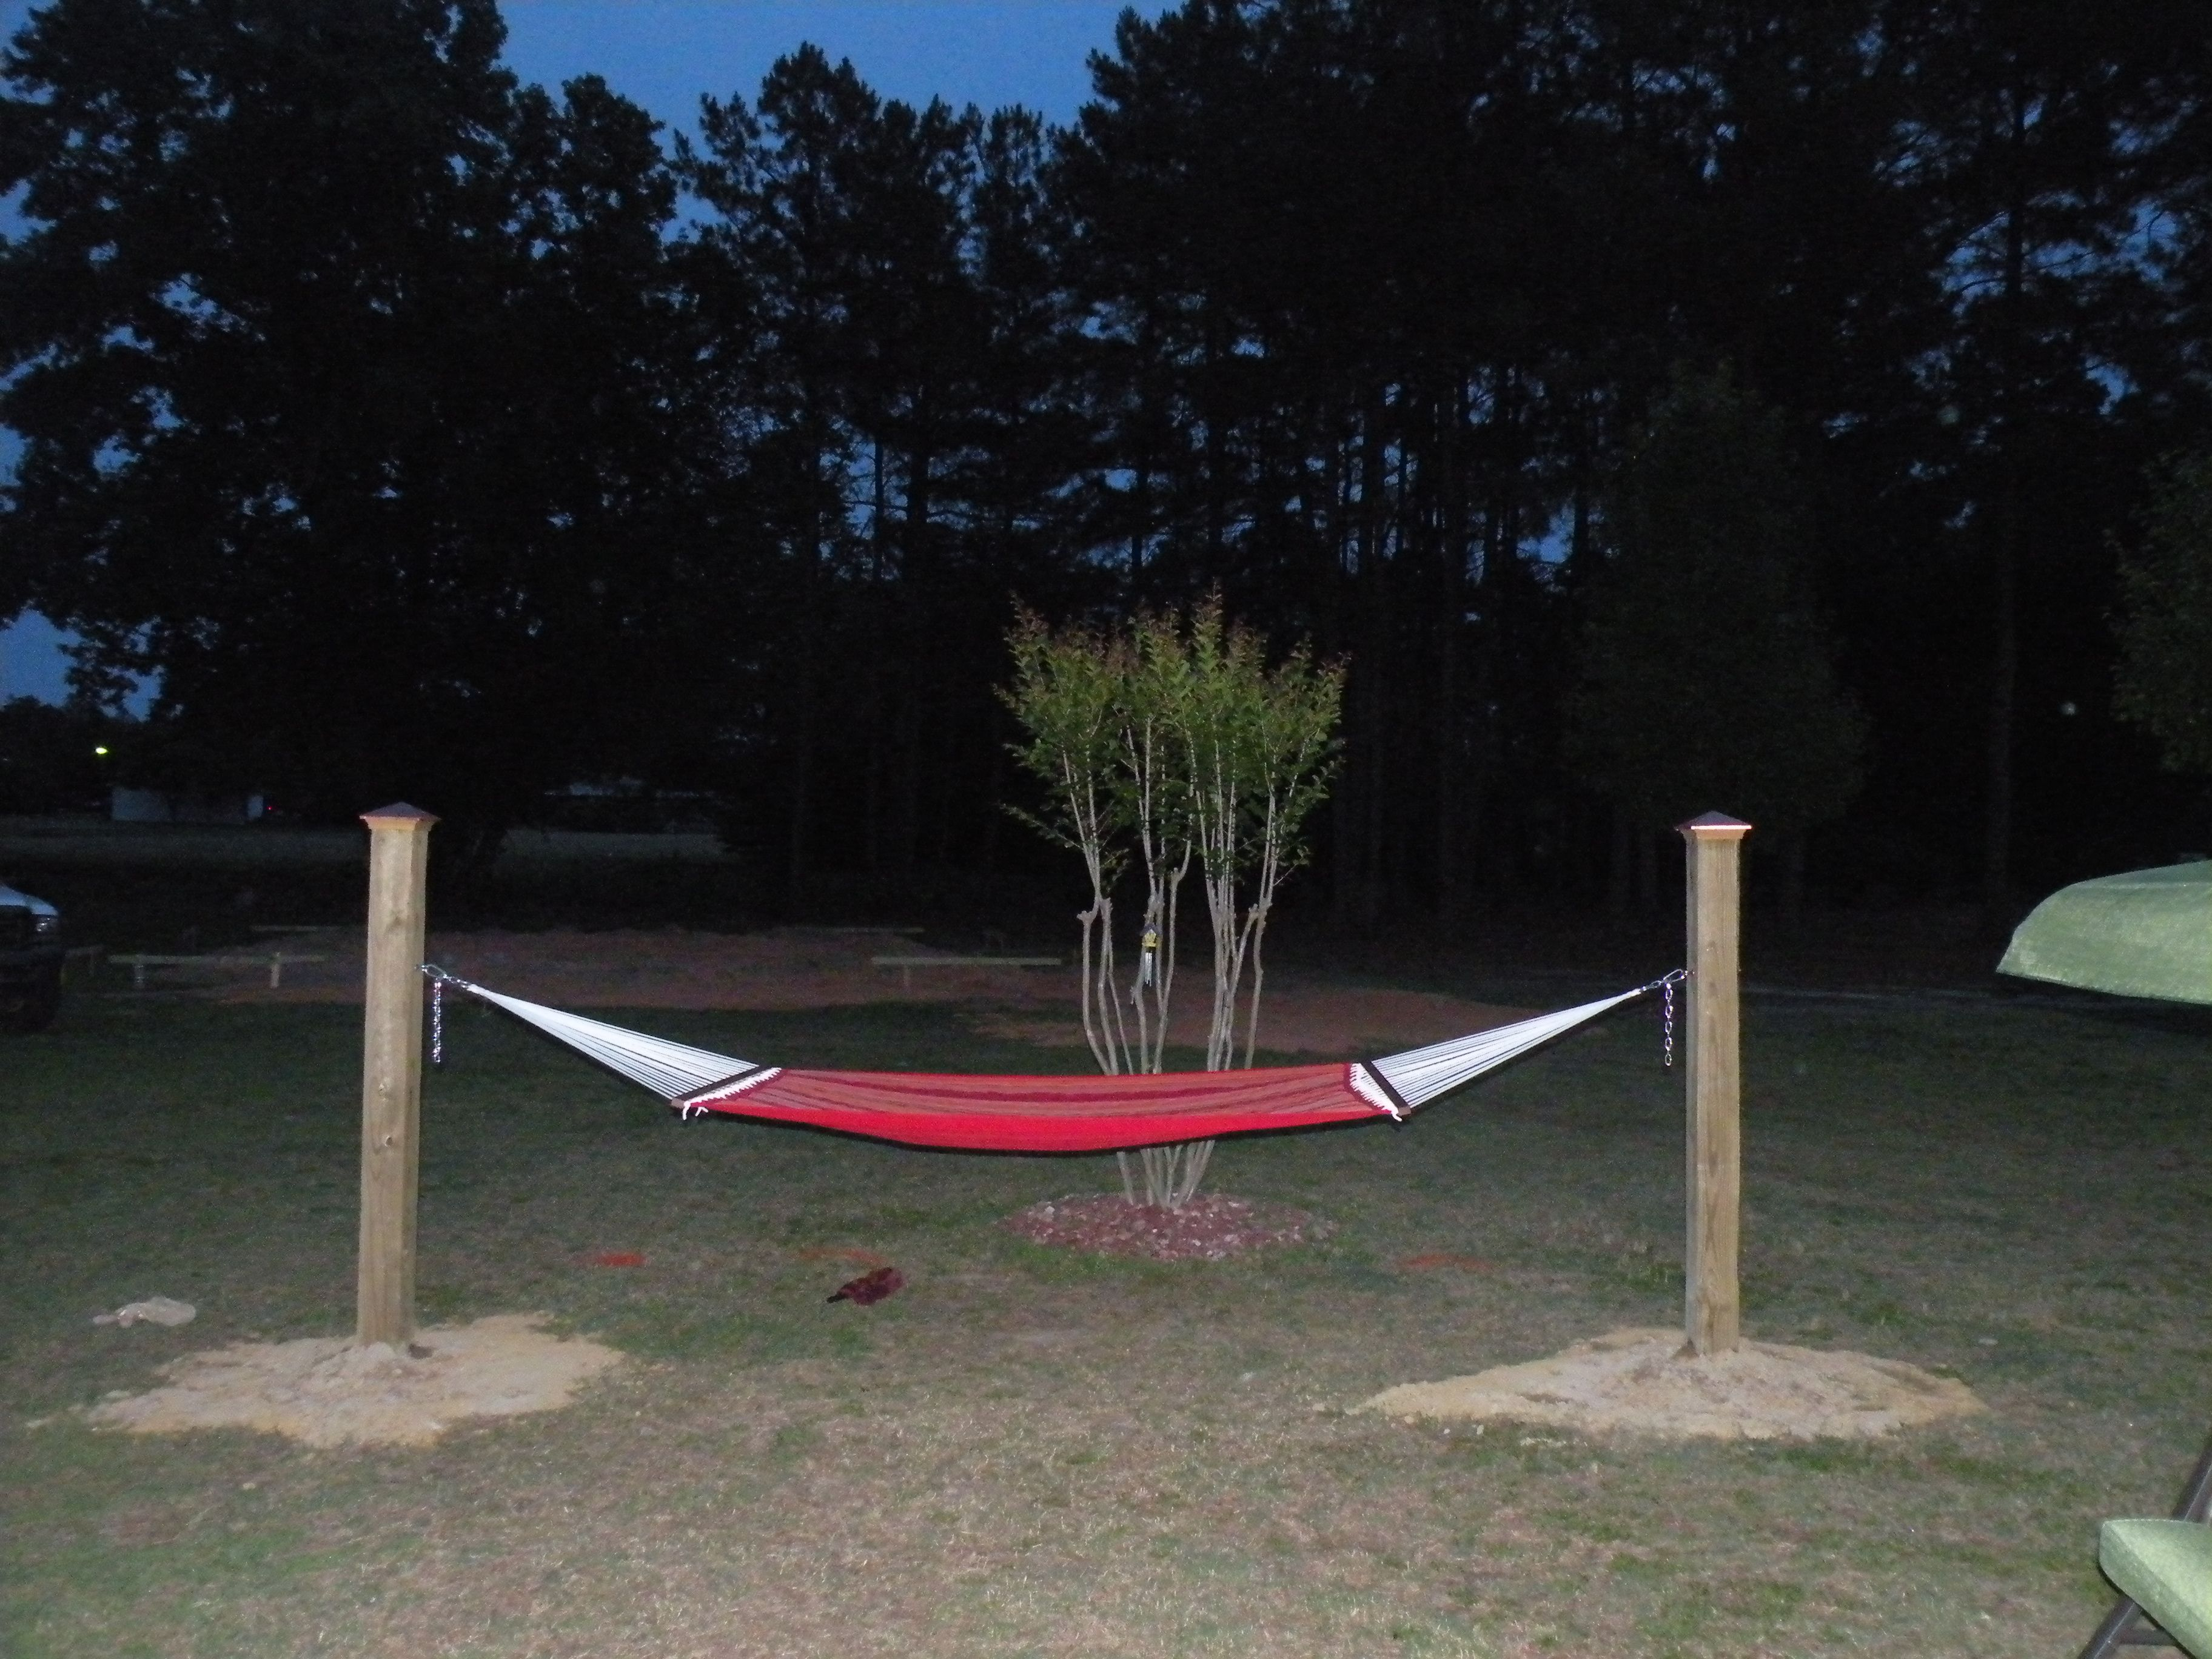 rope striking swing diy and high knots com clamps faedaworks porch hanging outdoor double counter deluxe modern xx luxury chair chain pit colors for bench kit ideas swings interior fire hammock hangers